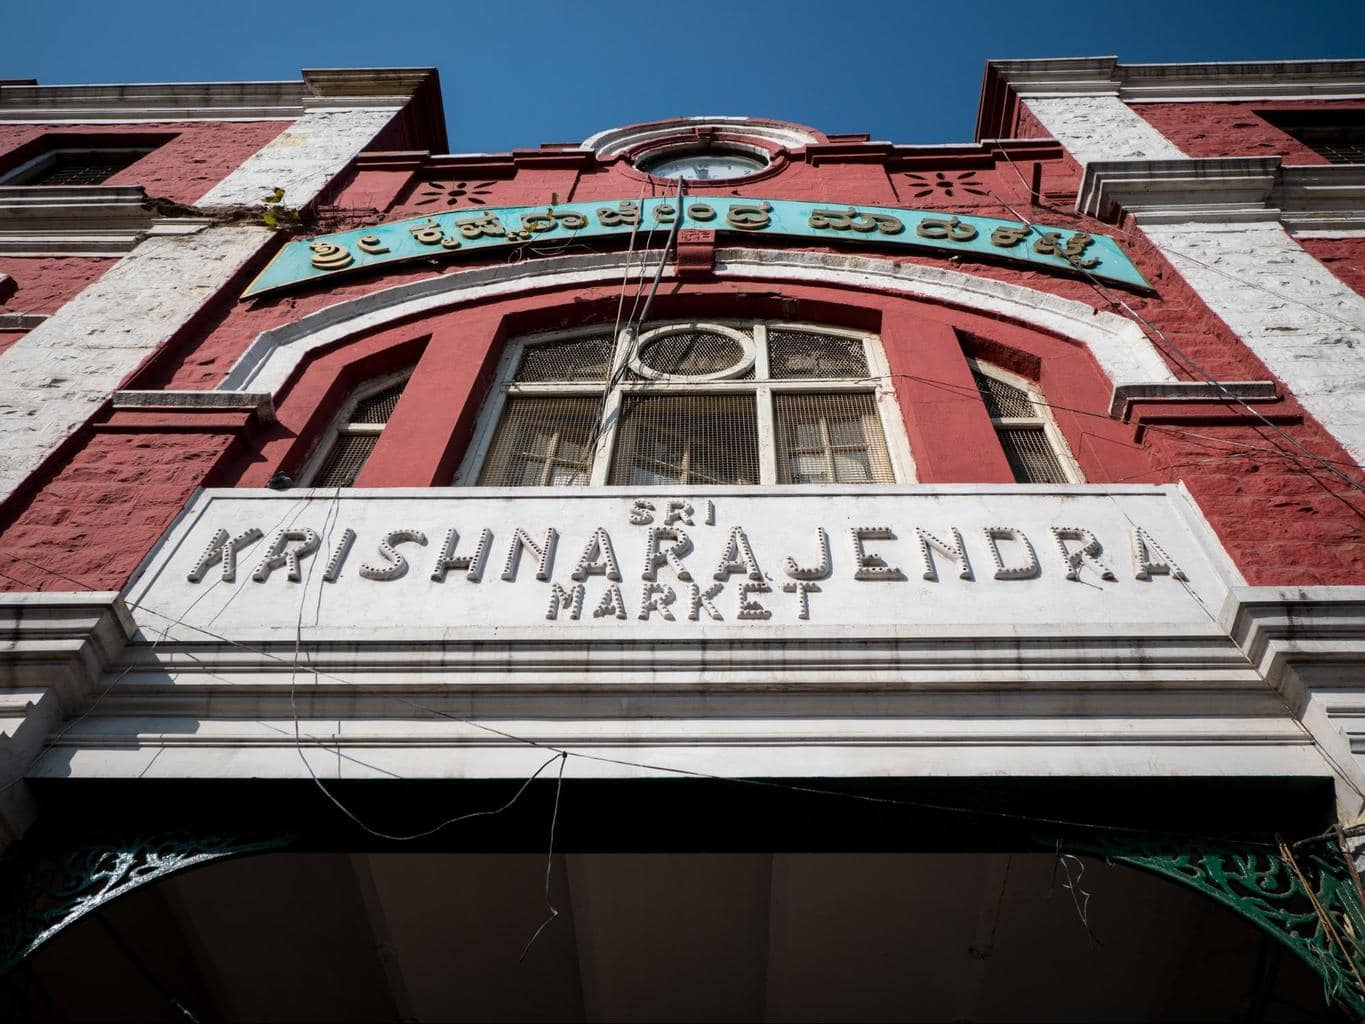 Krishna Jendra Market (KR) is one of the best places to visit in Bangalore